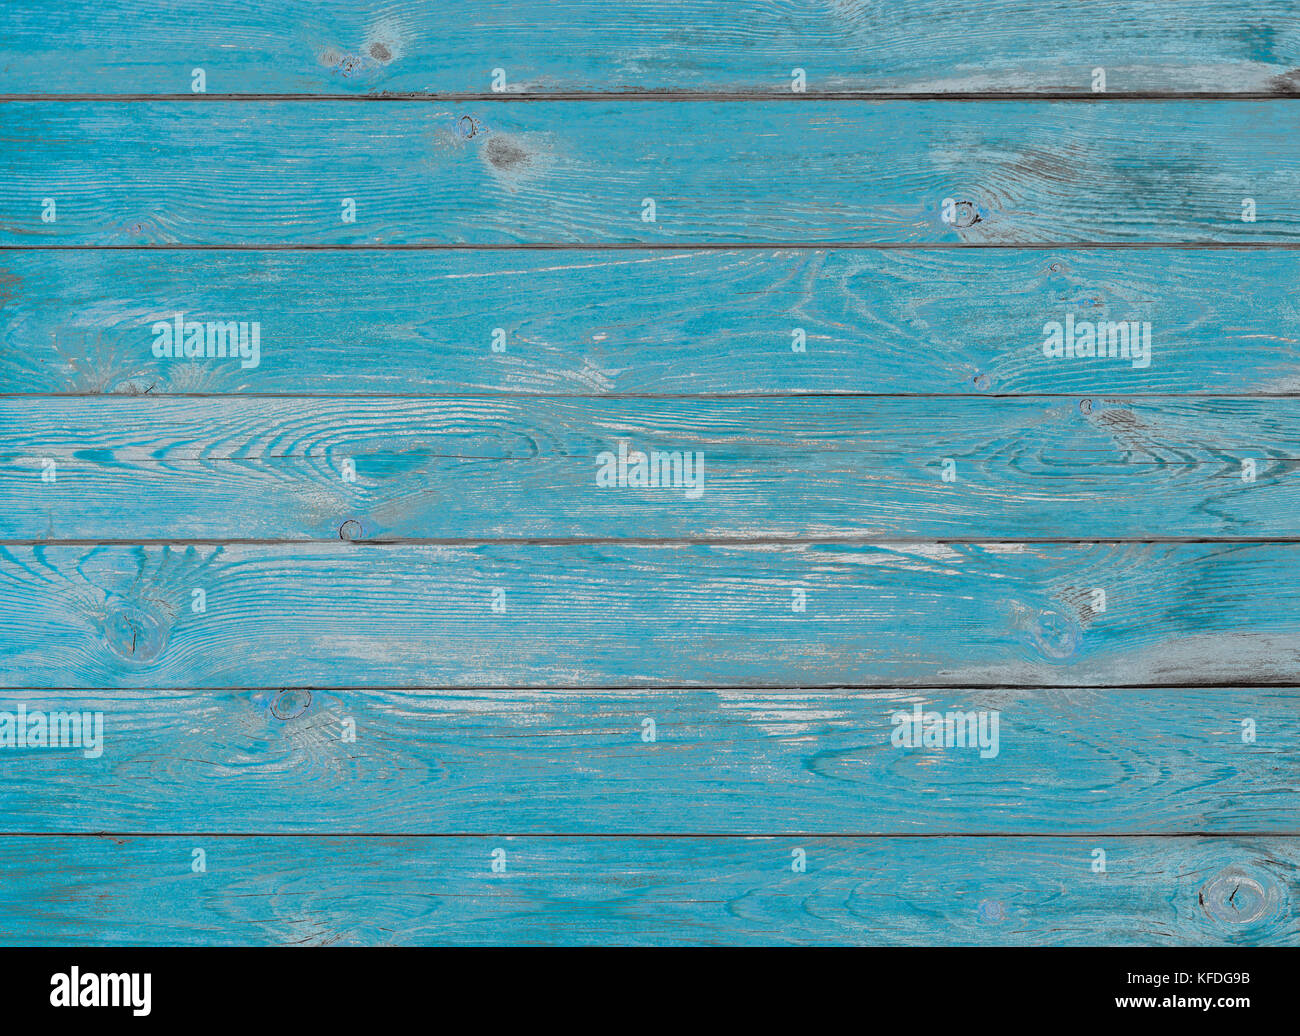 blue wood planks texture or background - Stock Image